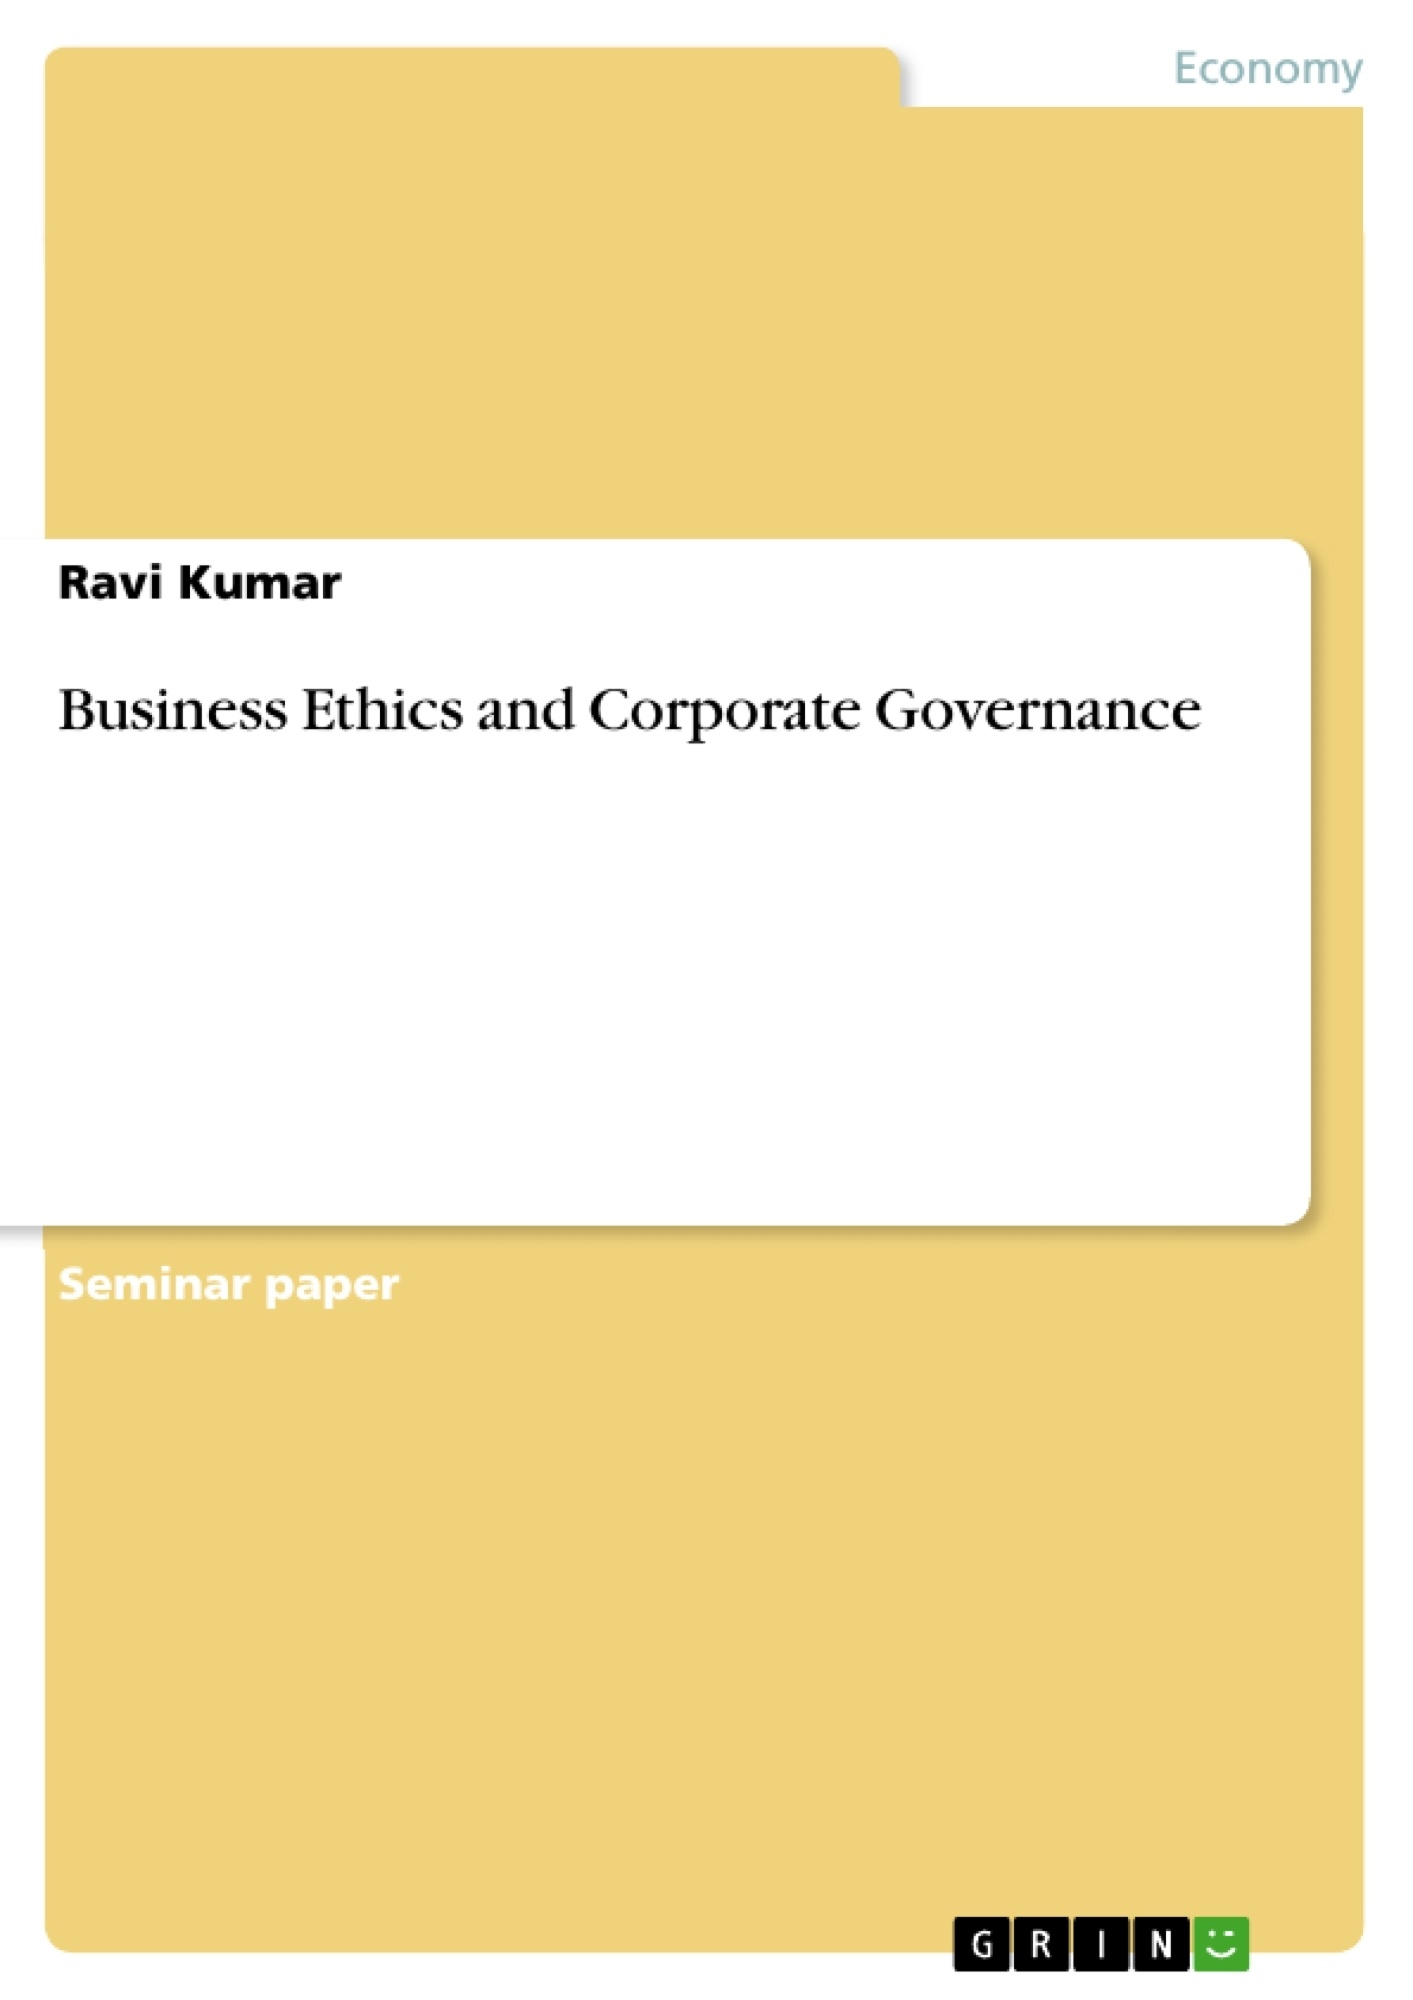 GRIN - Business Ethics and Corporate Governance